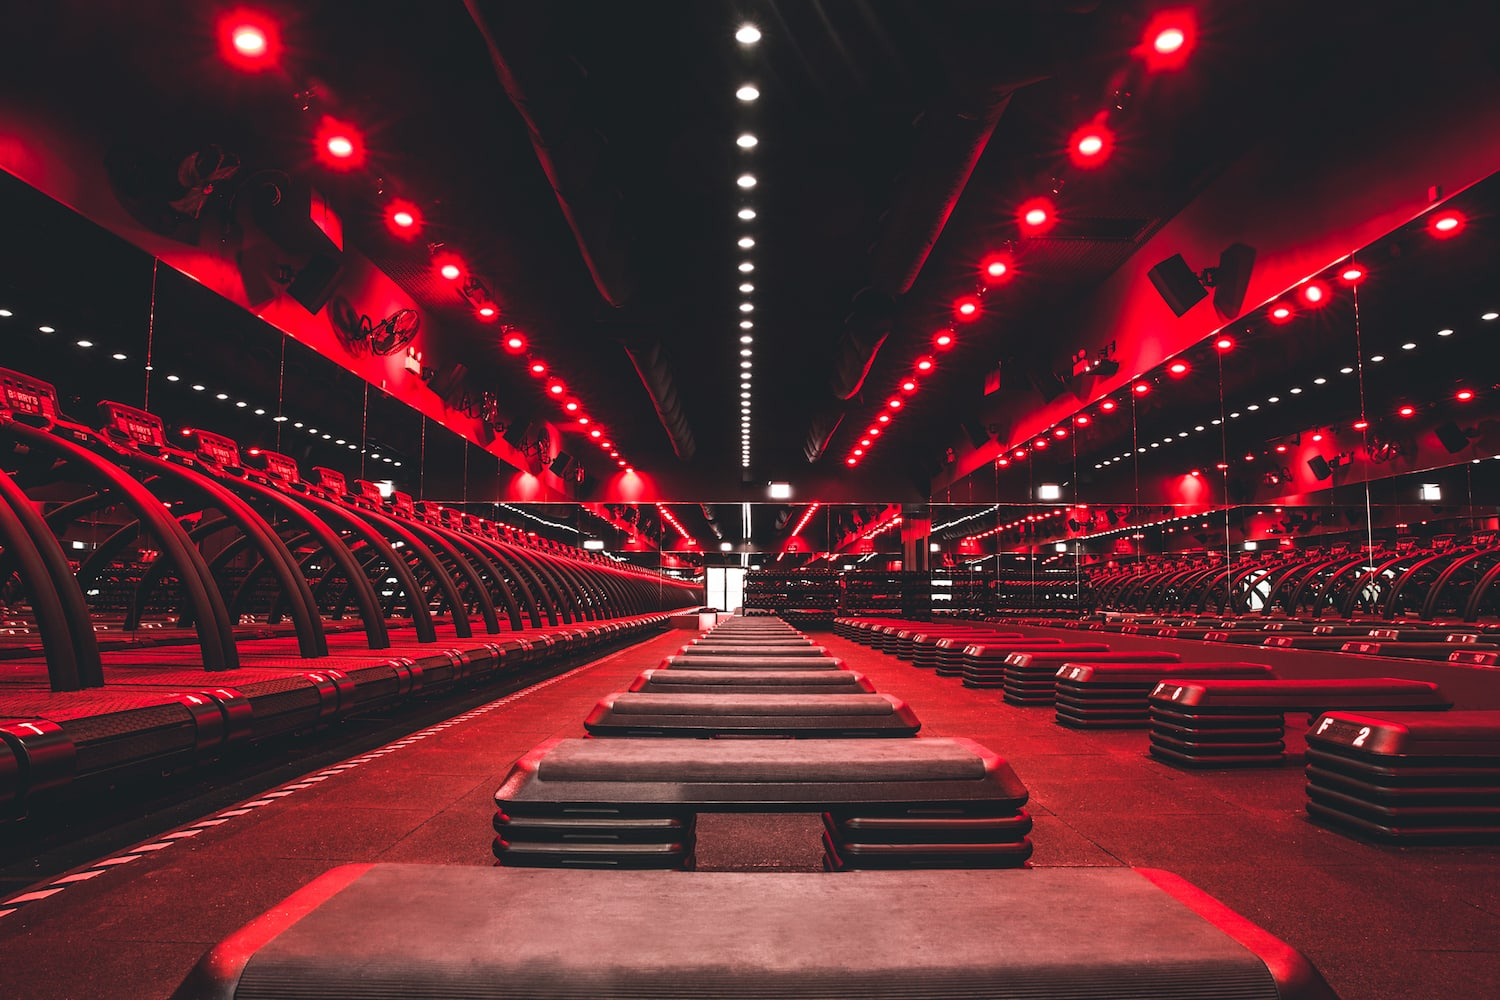 Barry's Bootcamp Singapore